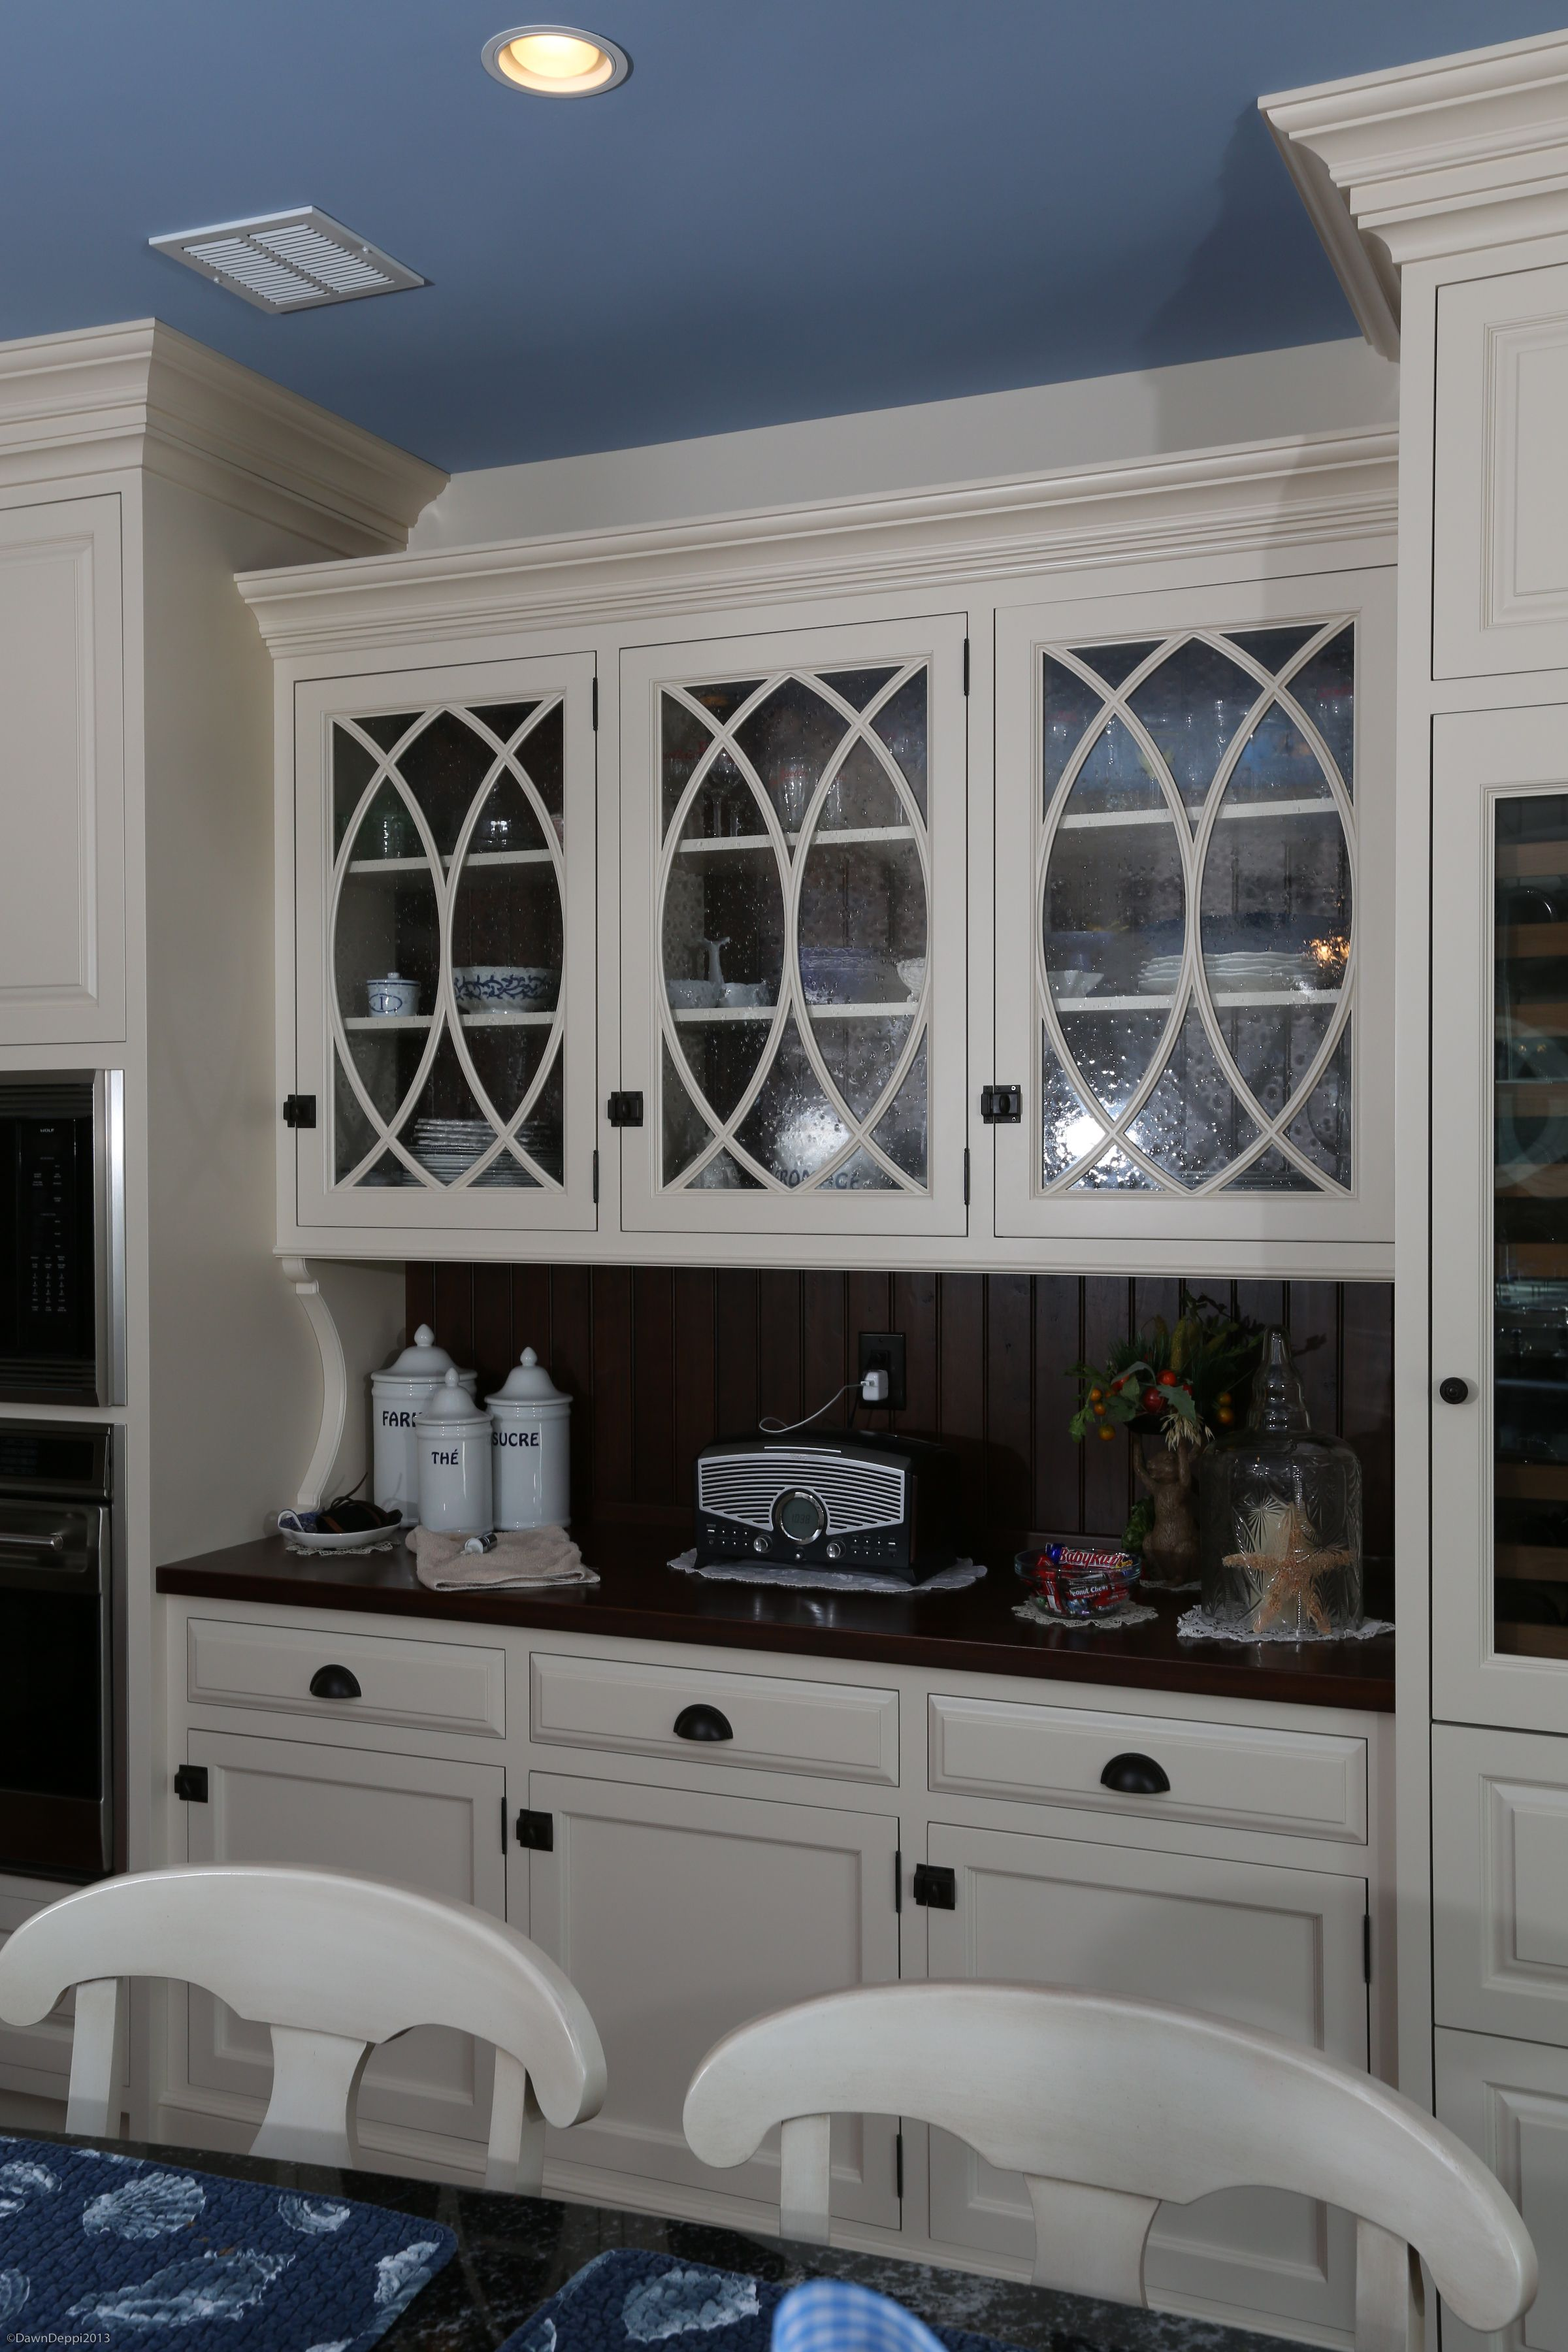 Beaded Glass Kitchen Cabinets White Painted Hutch Cabinetry With Curved Mullions And